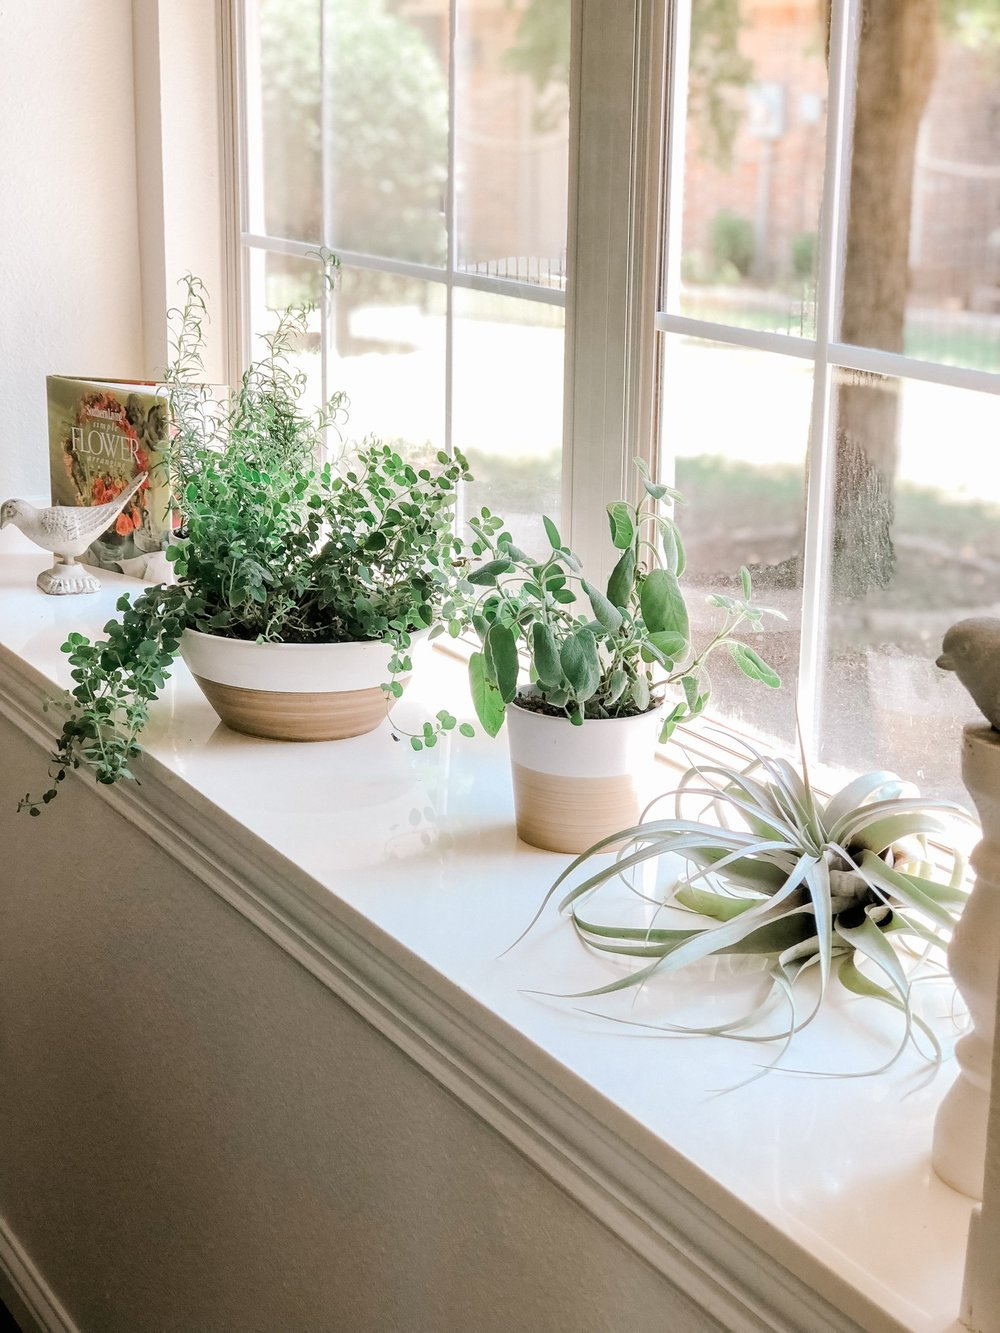 Our House Plants - Herb Care Tips